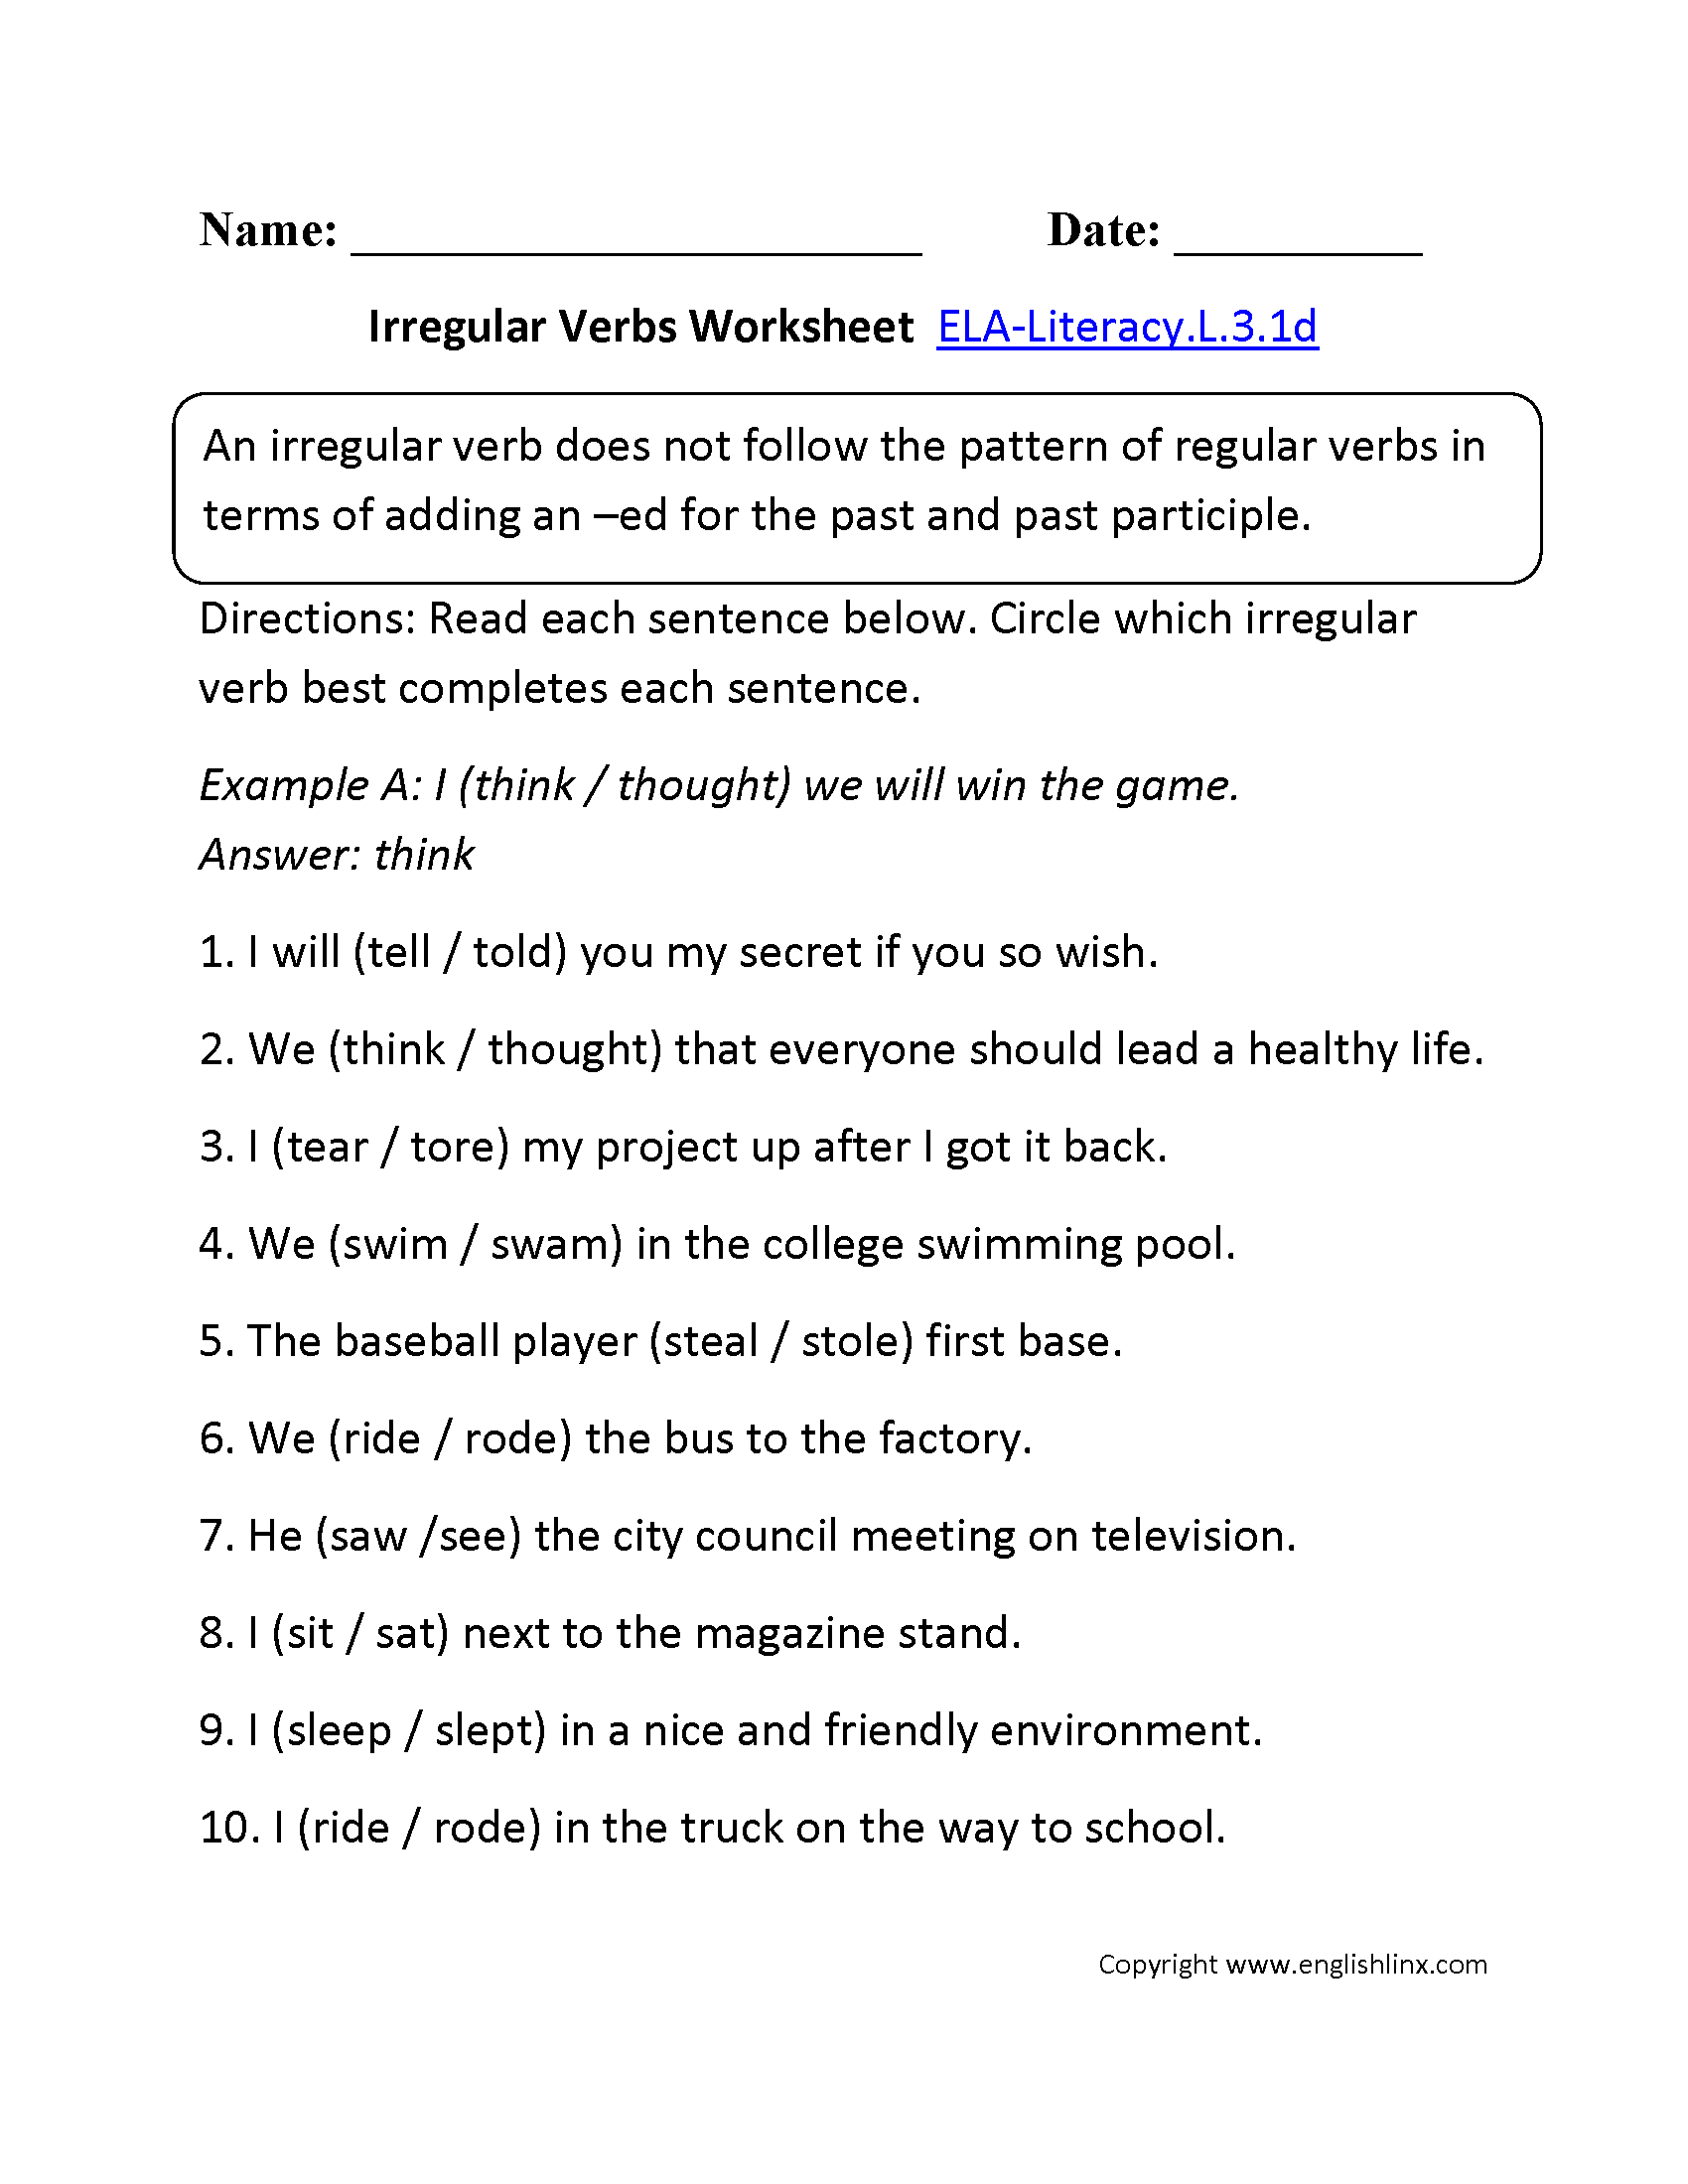 Irregular Verbs Worksheet 1 Ela Literacy L 3 1d Language